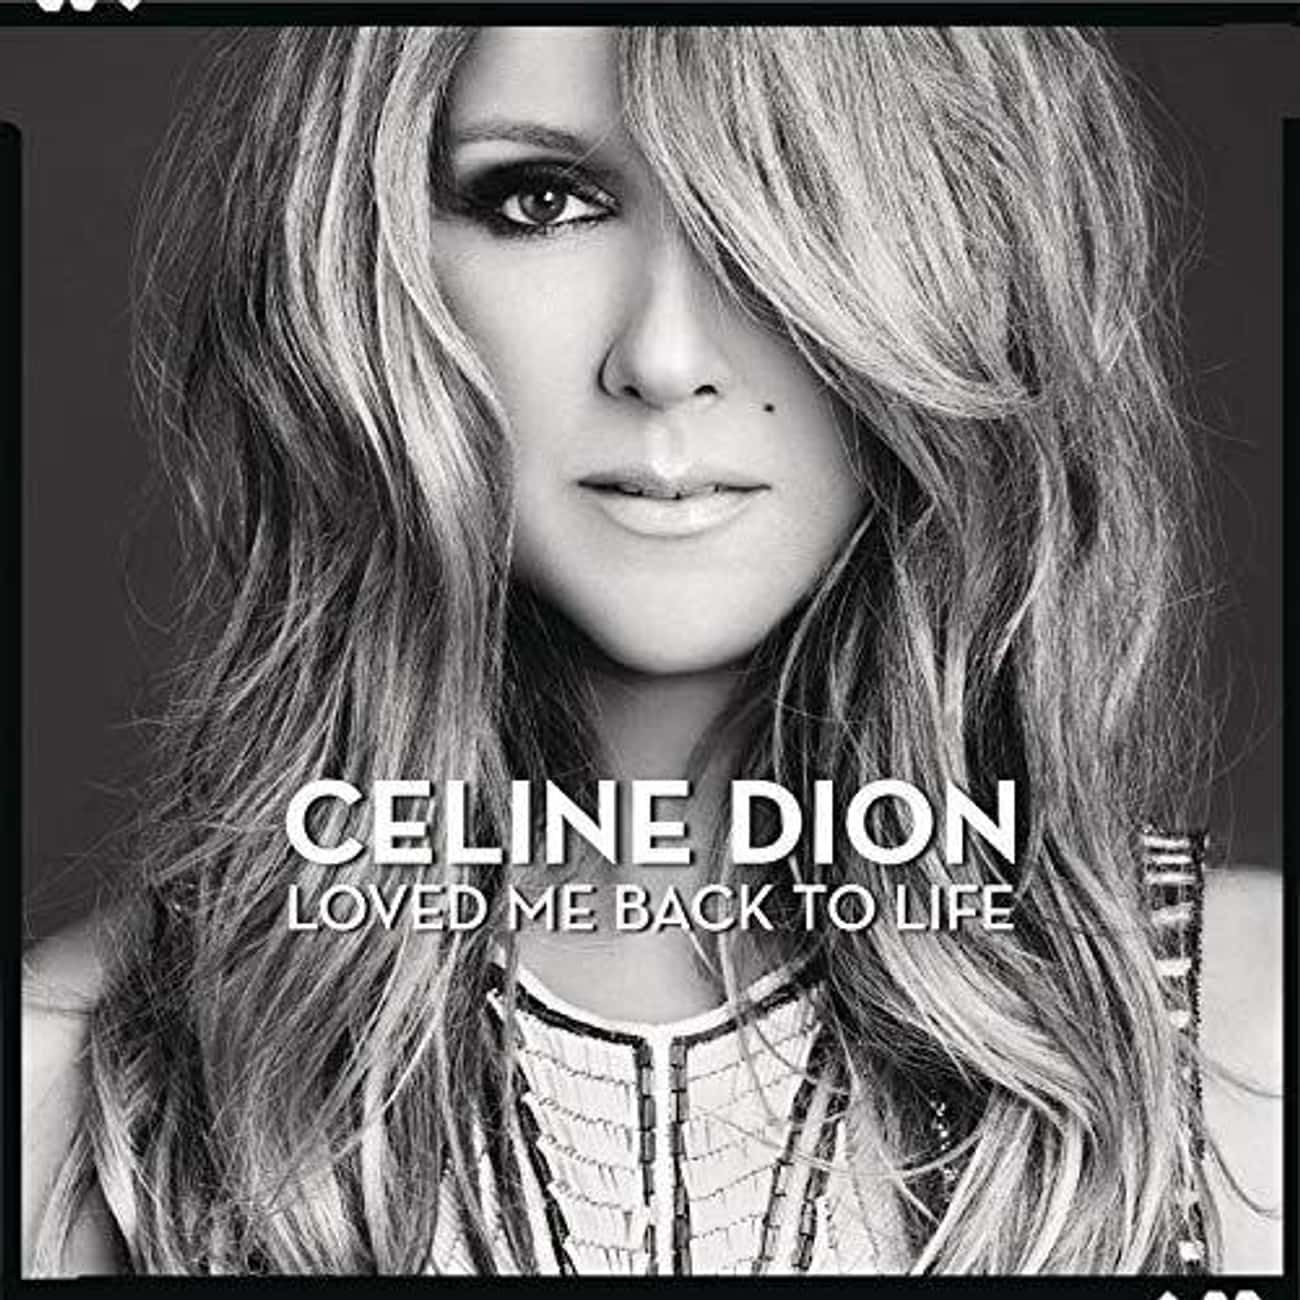 Celine Dion: 'Always Be Your G is listed (or ranked) 2 on the list Songs With 'Baby' In Them That Are About Actual Babies